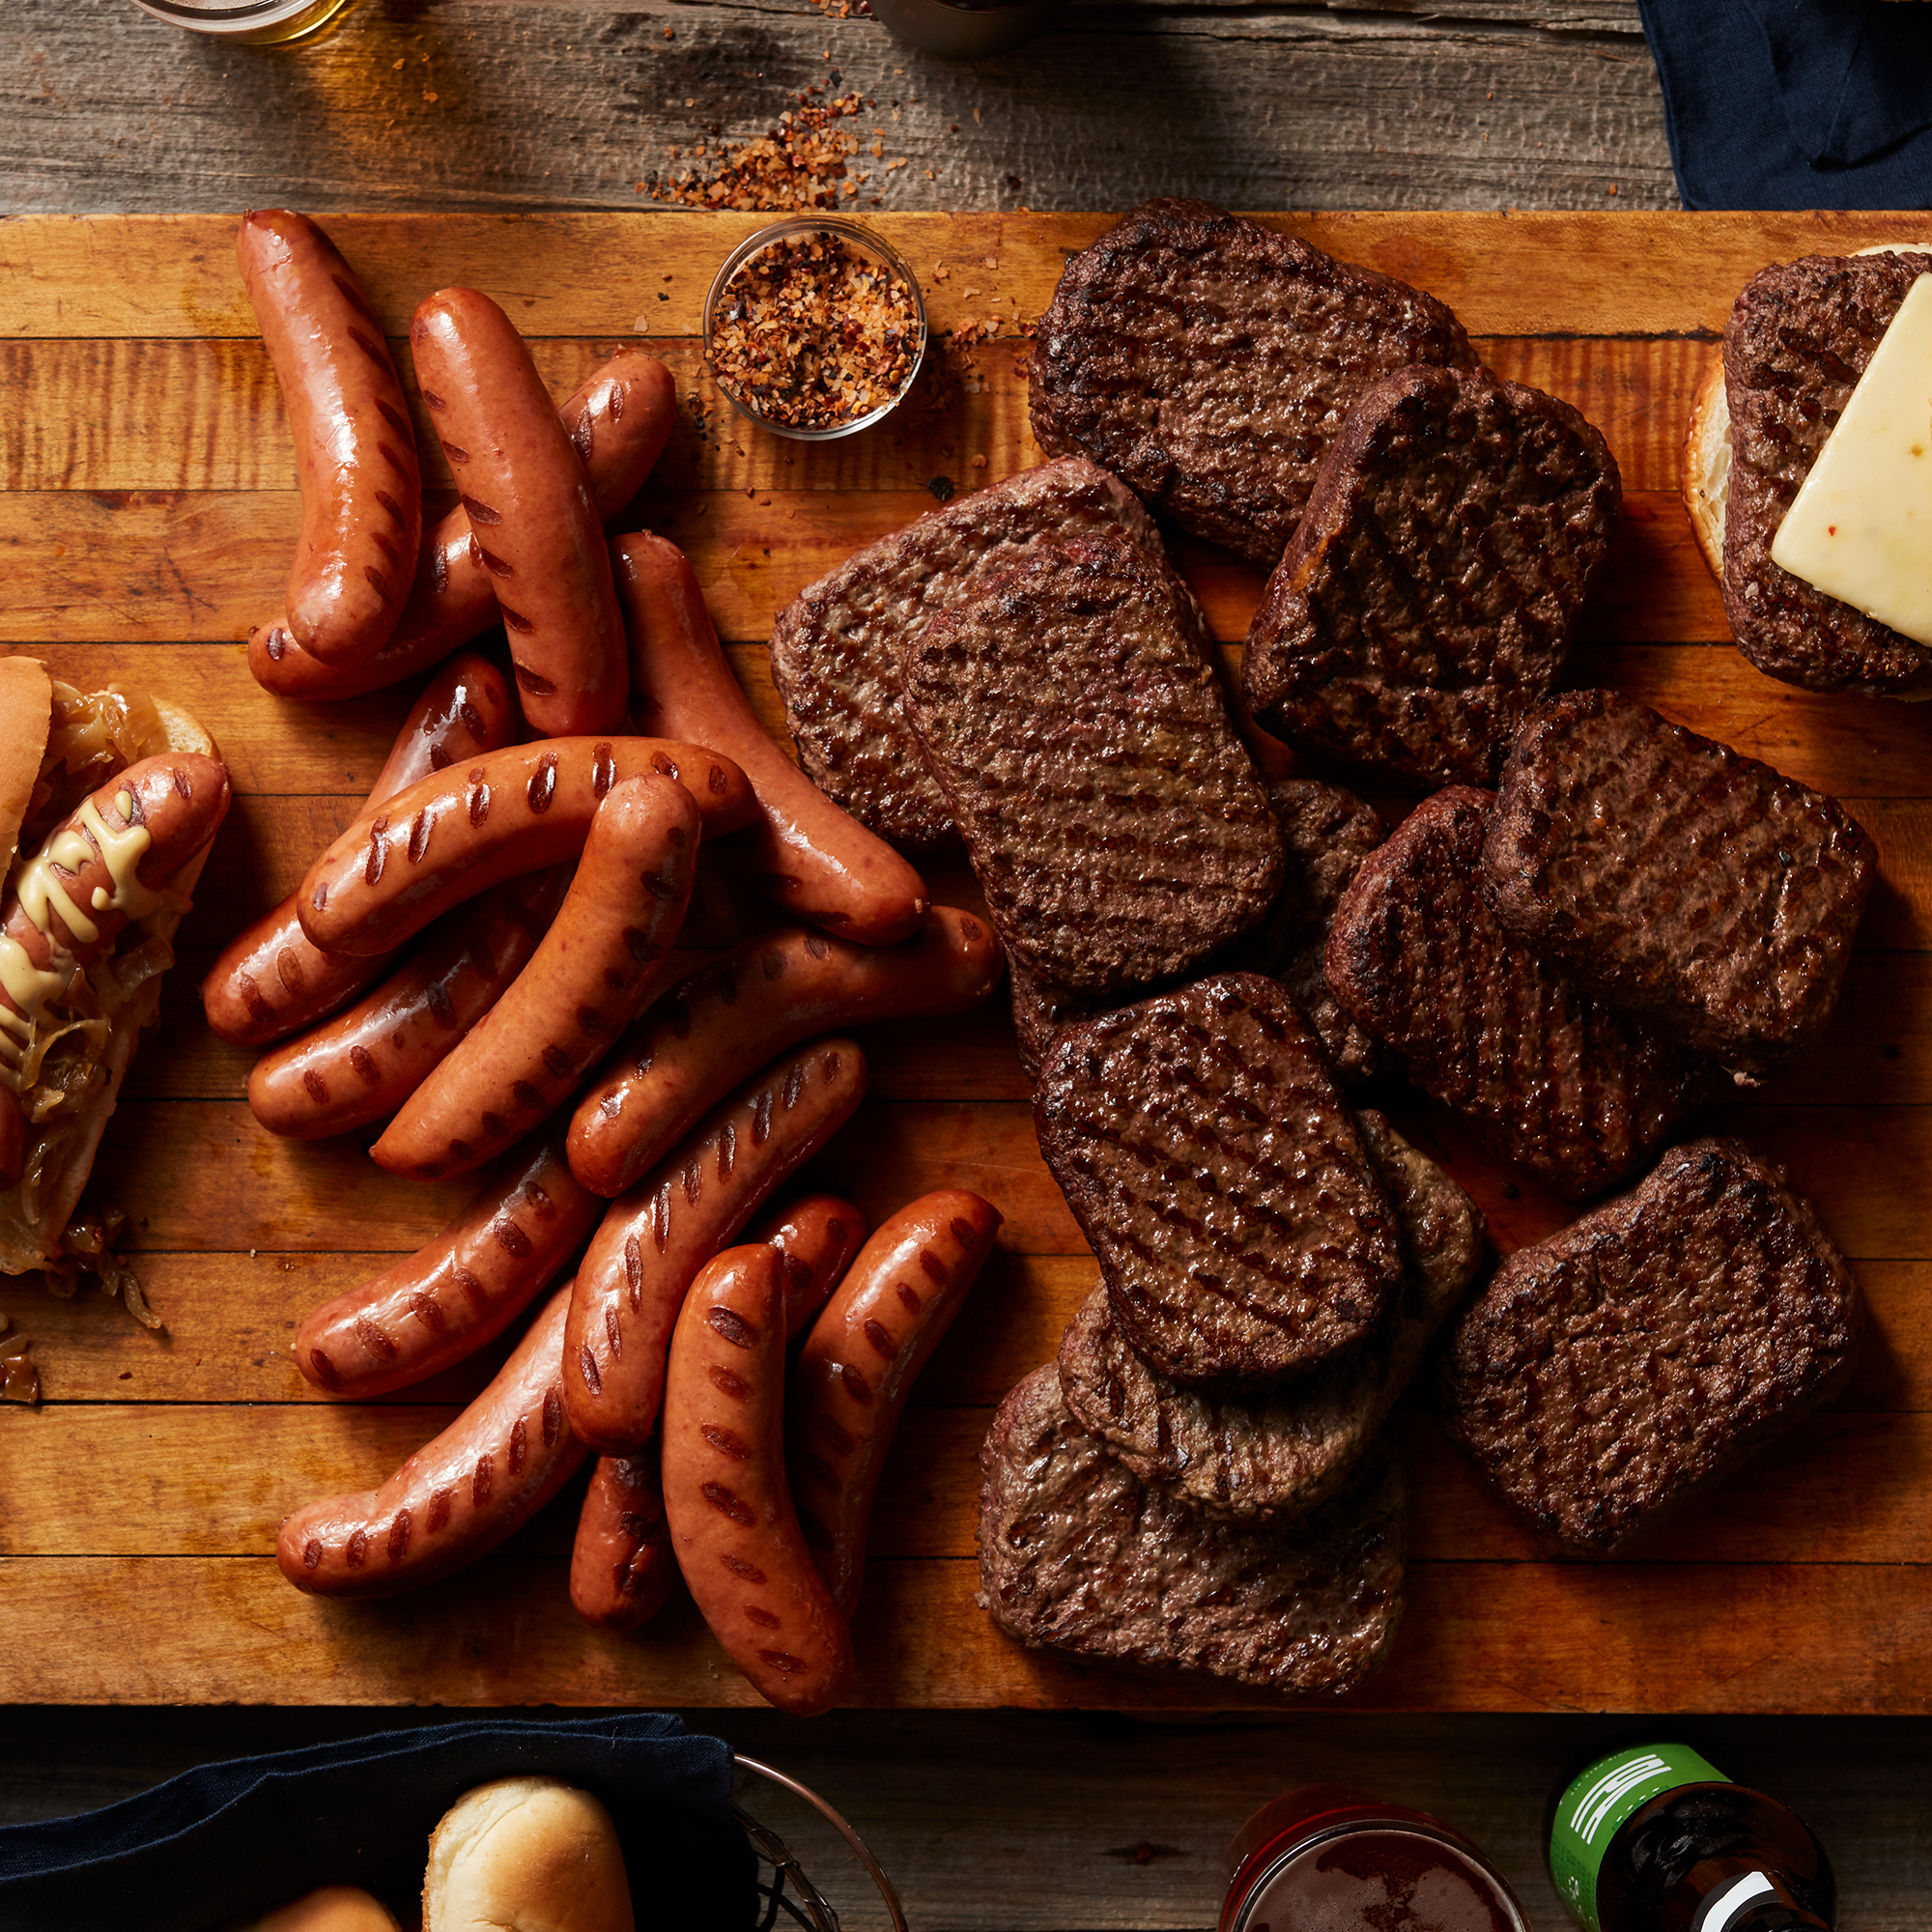 No need for Dad to choose between a brat and a burger bar at his Father's Day cookout! This gift features 16 plump, juicy brats and 12 Prime Burger patties so he can create the ultimate backyard feast!